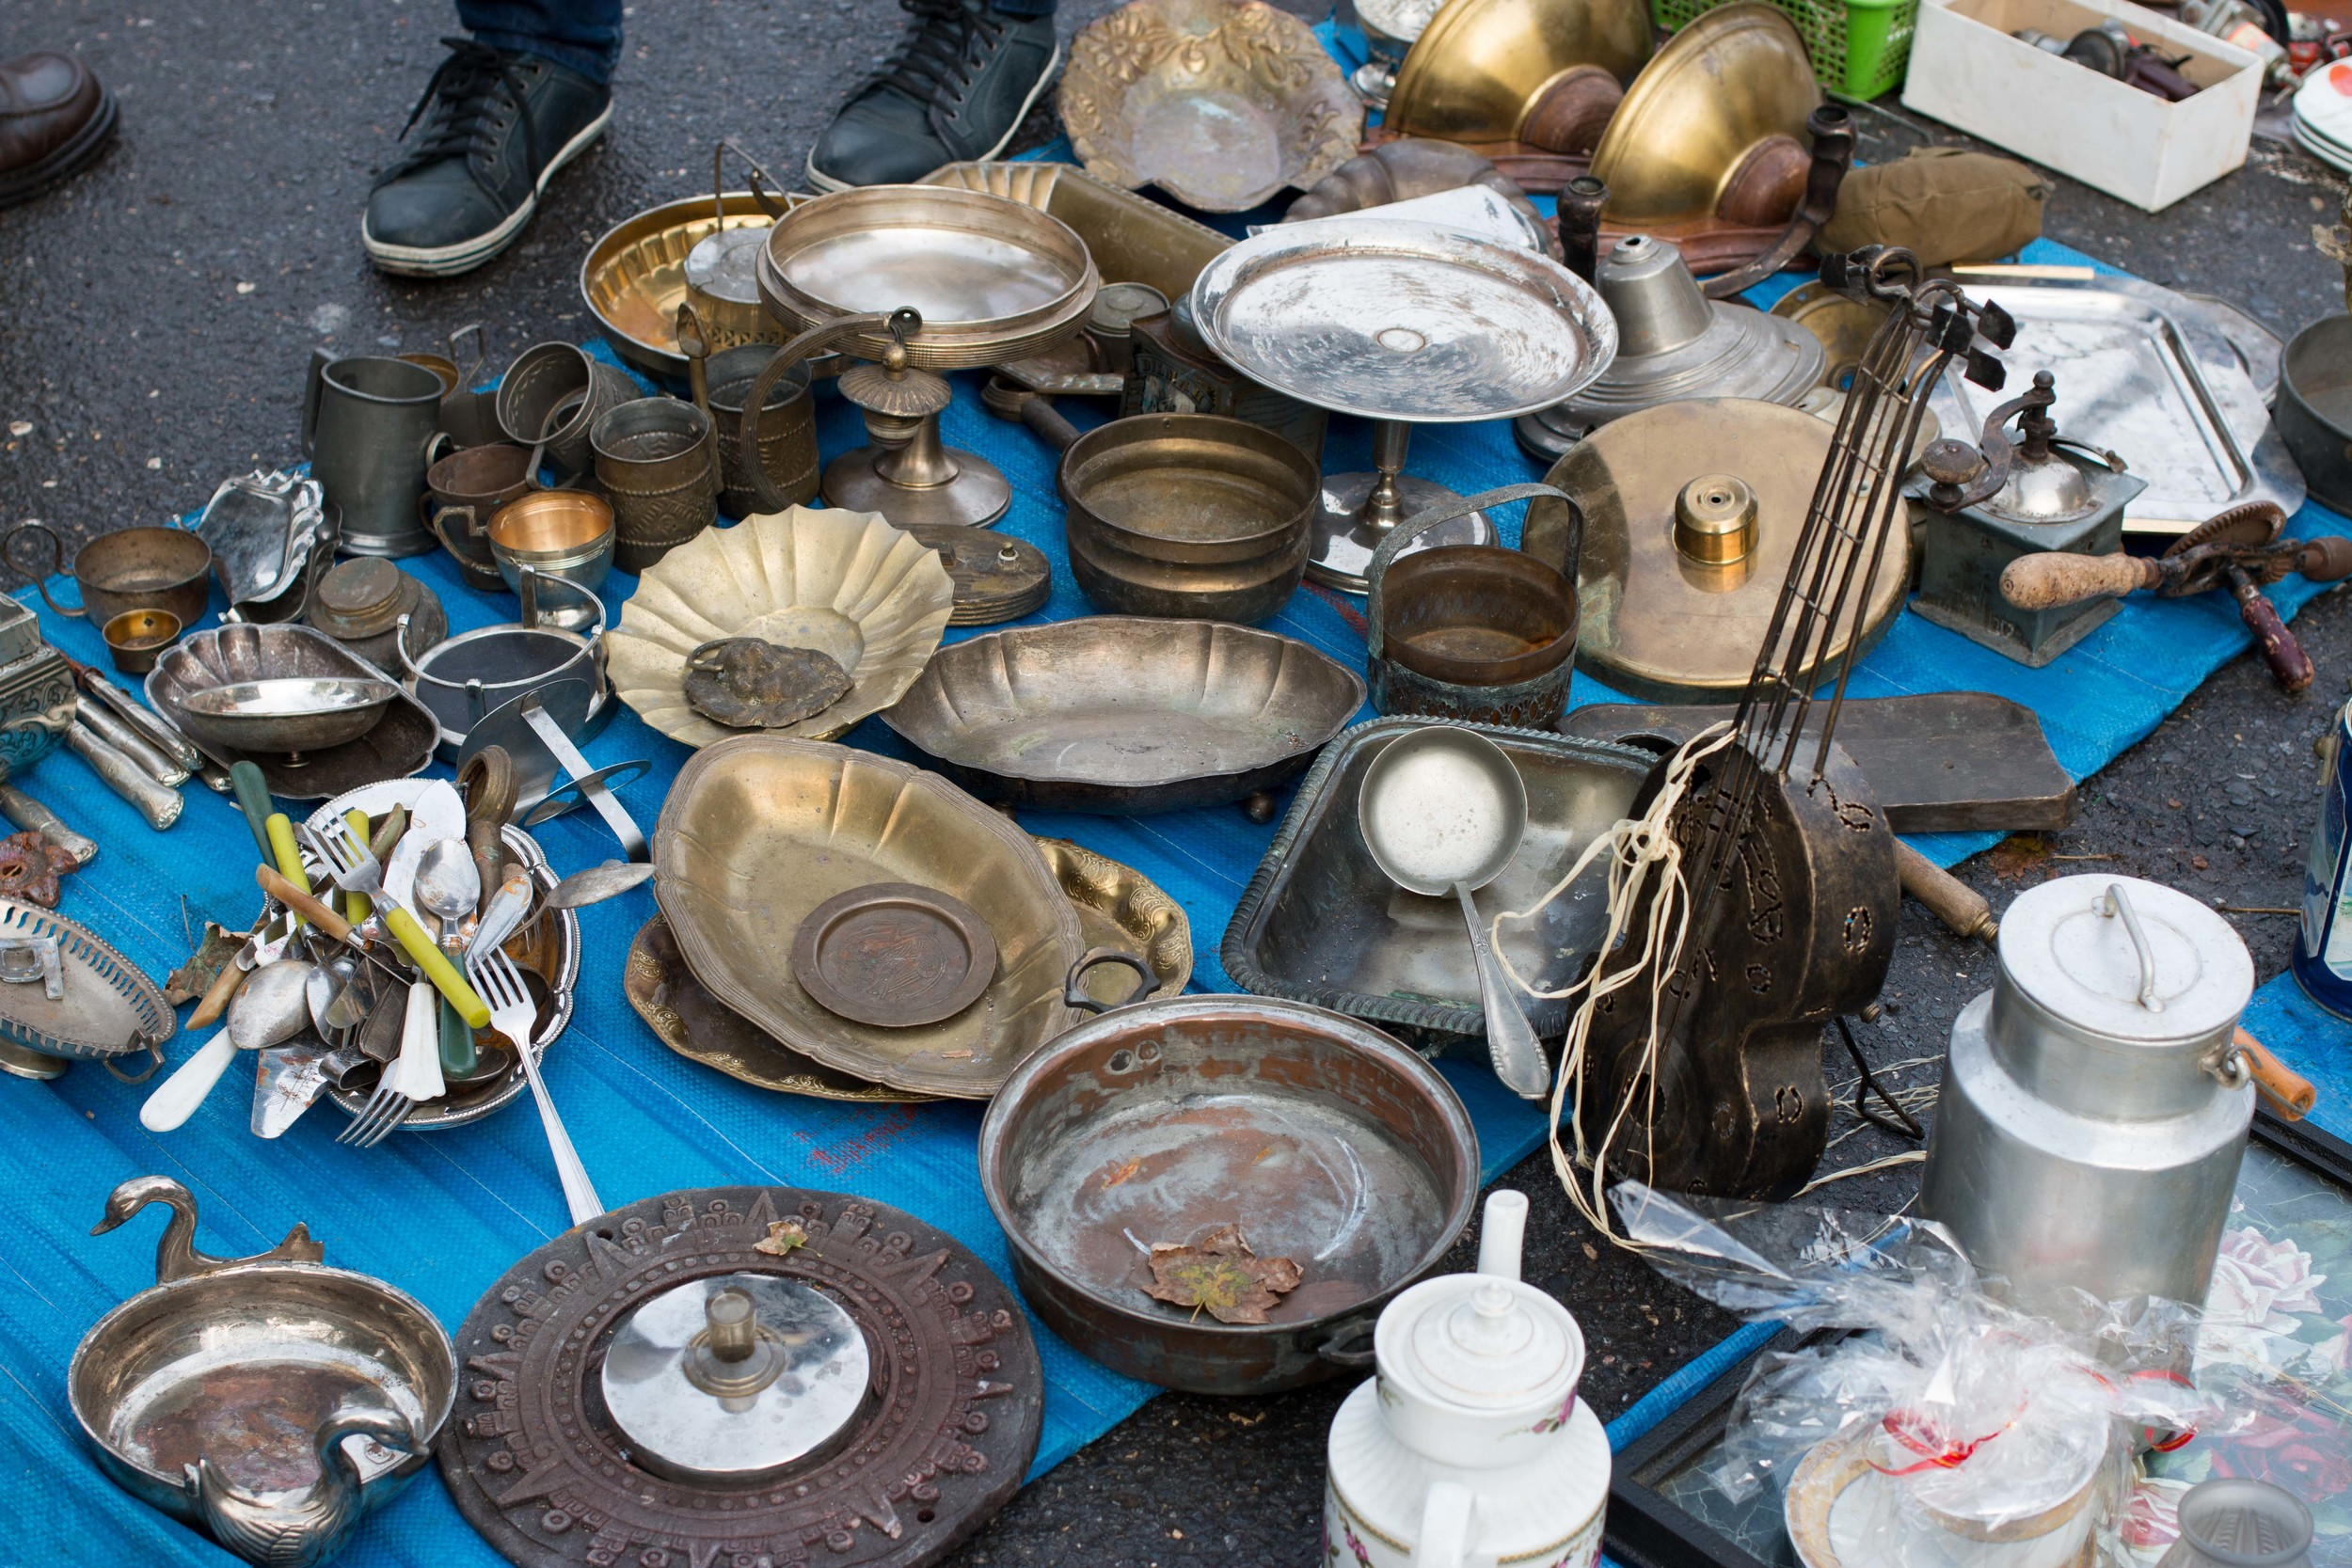 Some finds at the Hala Targowa Flea Market. You could buy everything from shoes, clothes and household items to World War II and Communist Era items.